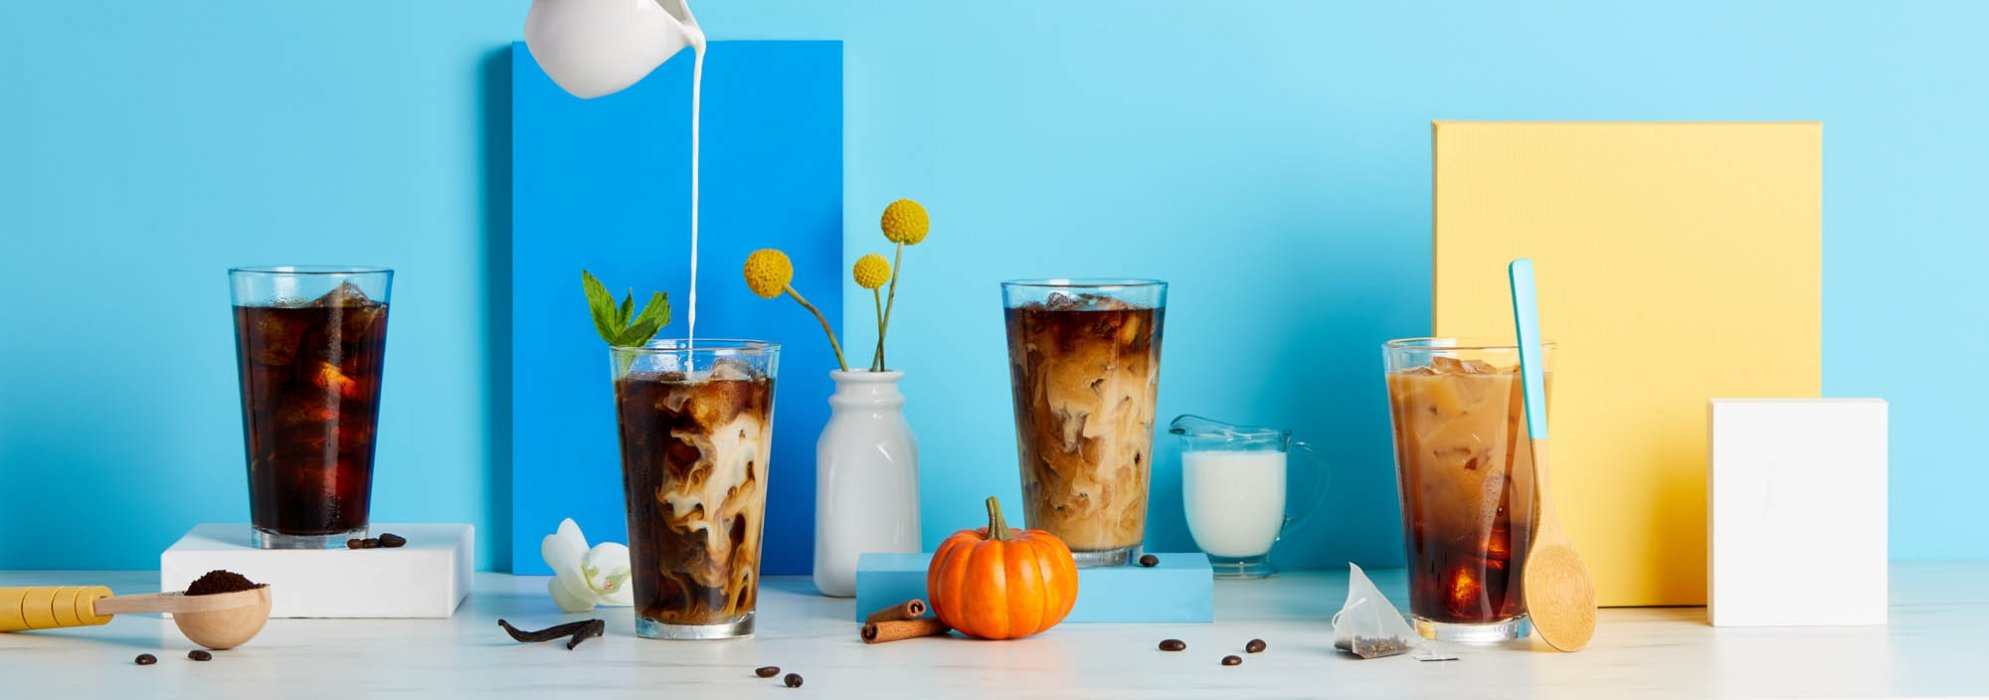 Different stages of creamy iced coffee - drink photography